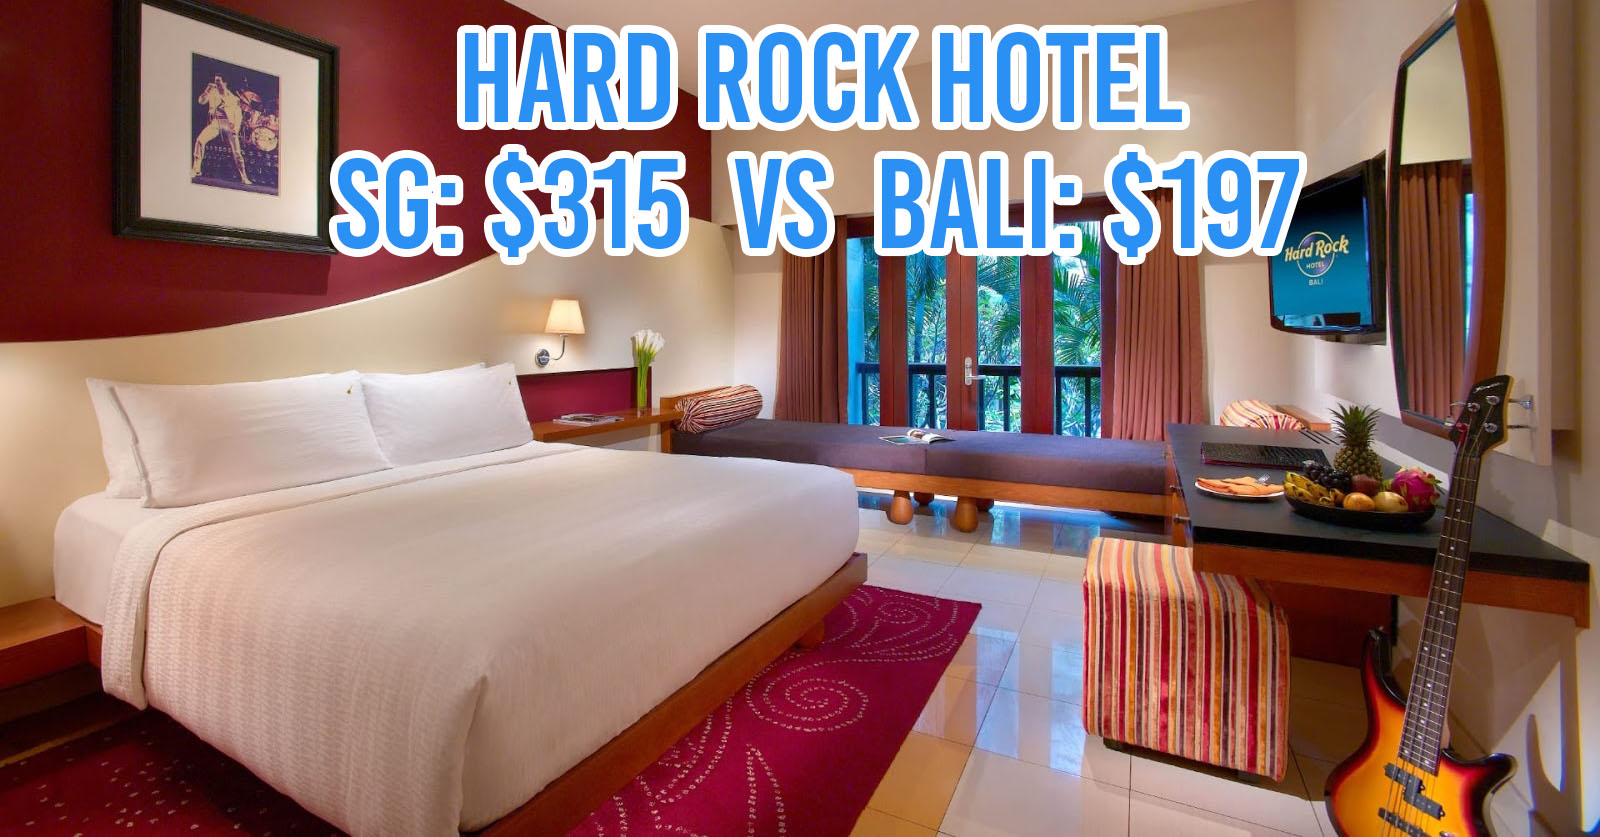 10 Luxury Hotels In Bali Way Cheaper Than Singapore S For